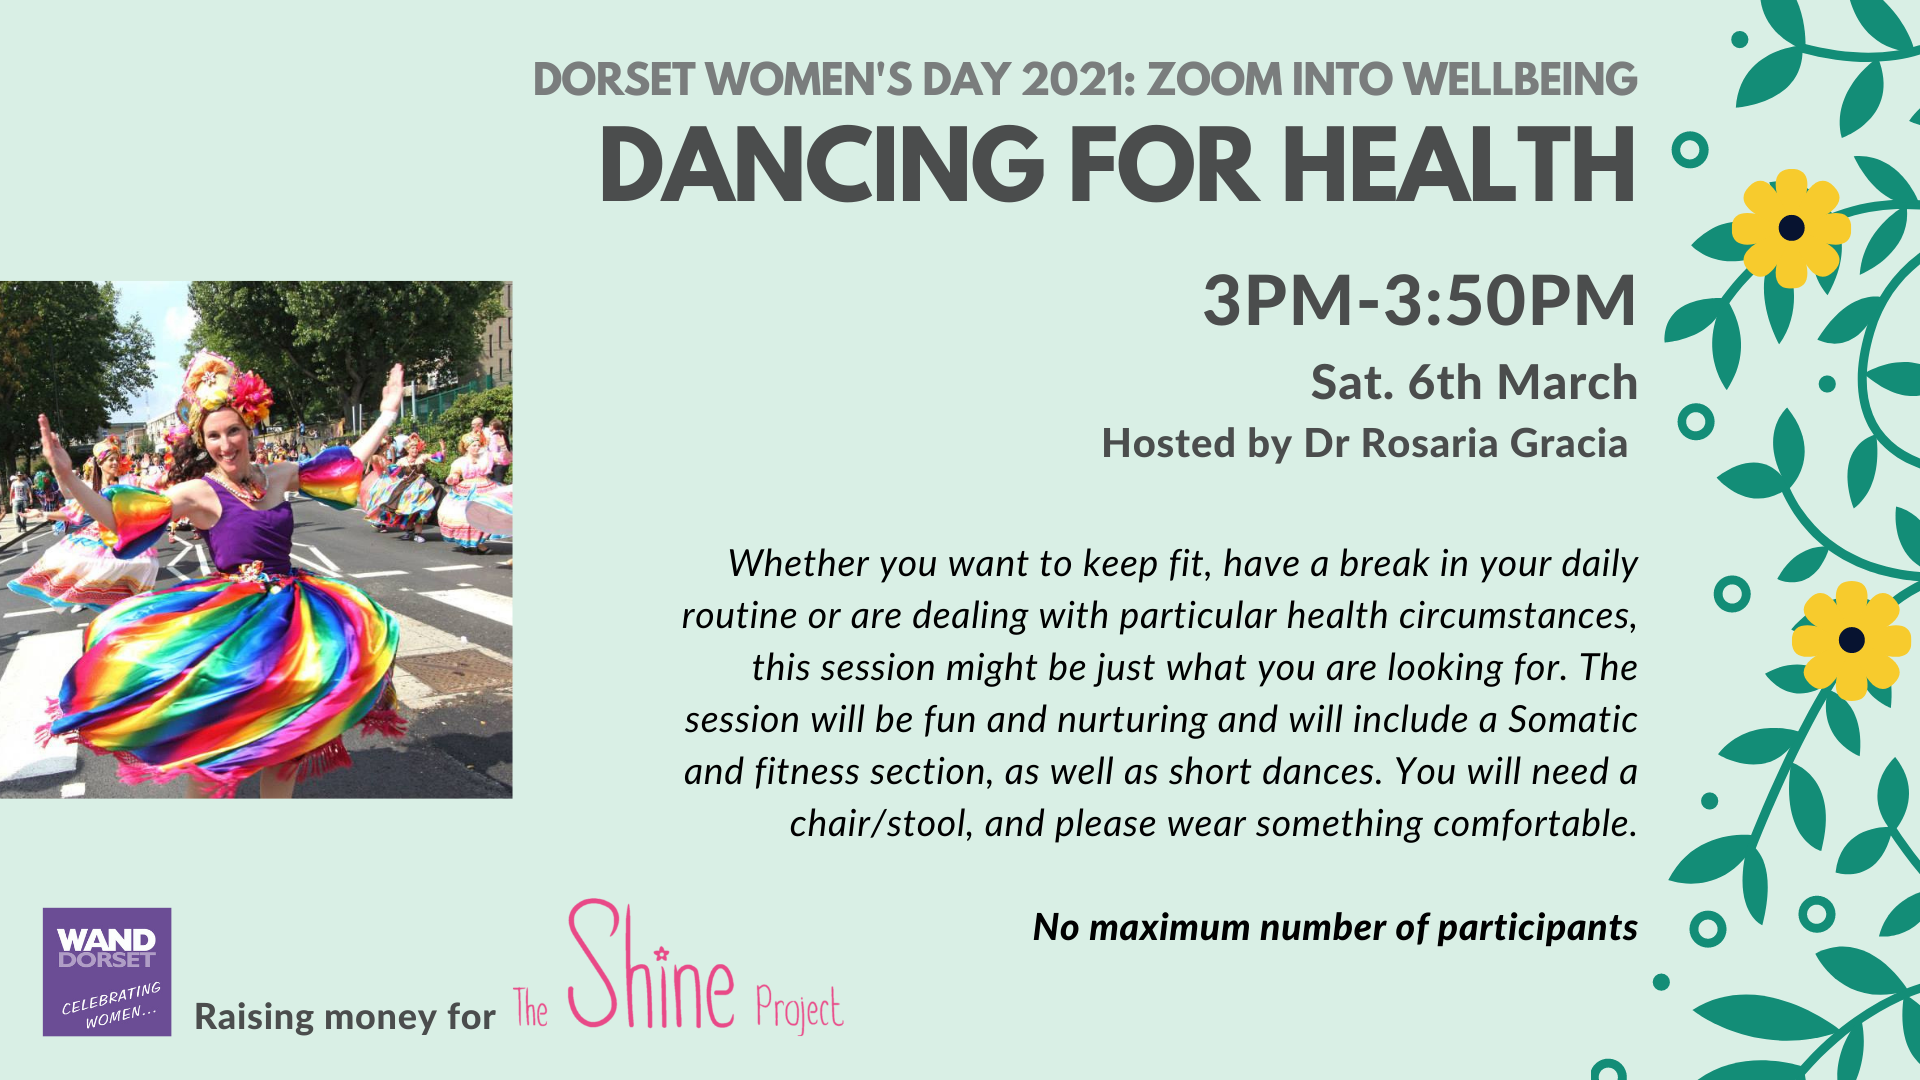 Dorset Women's Day 2021: Dancing for Health